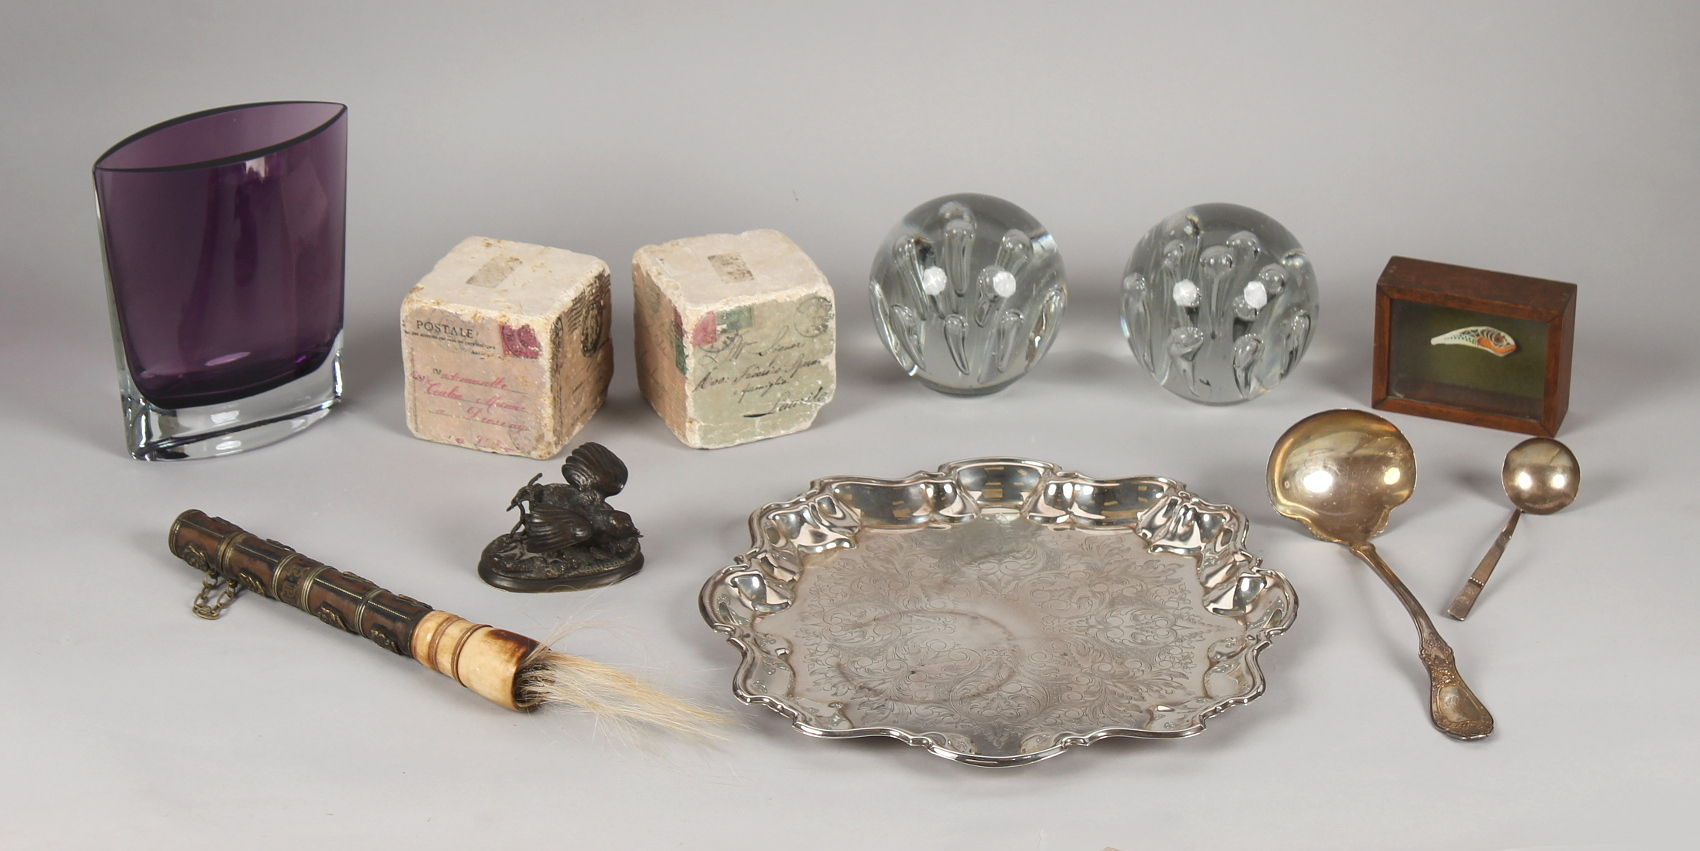 Property of a lady - a group of decorative items including two glass dump weights with bubble